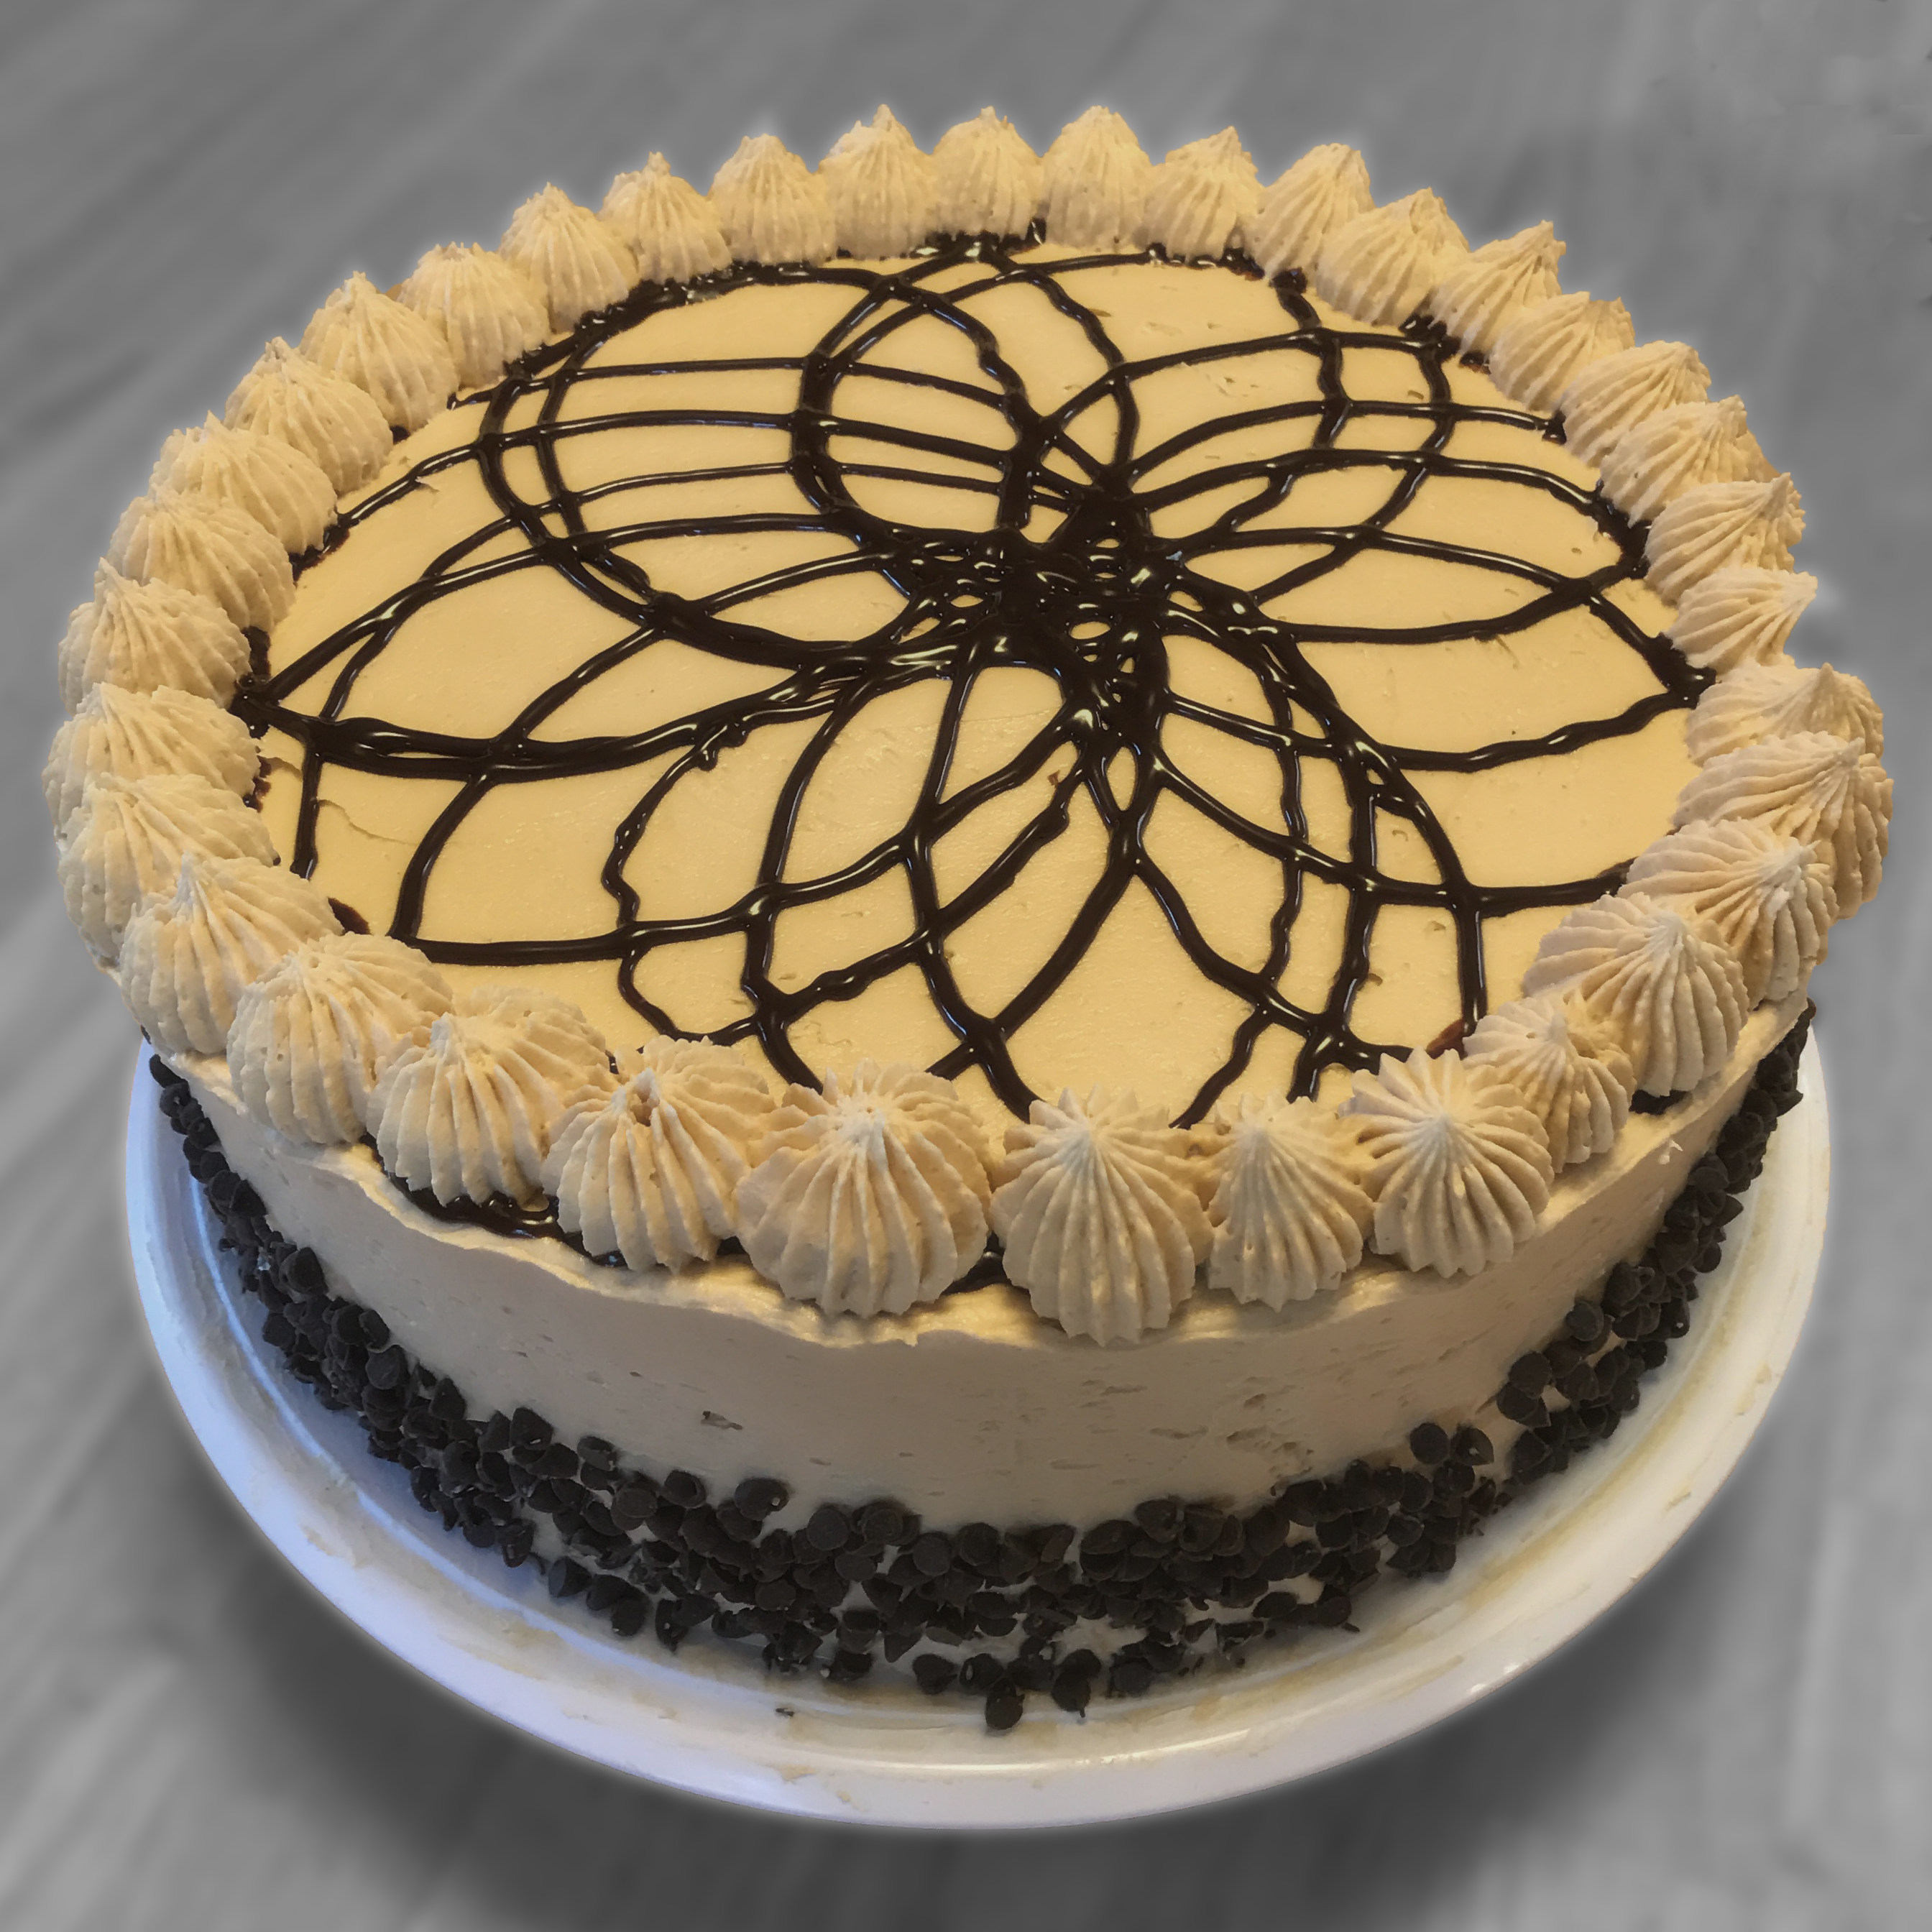 Le Torte Dolci Springfield Ohio Bakery Custom Gourmet Occasion Cakes